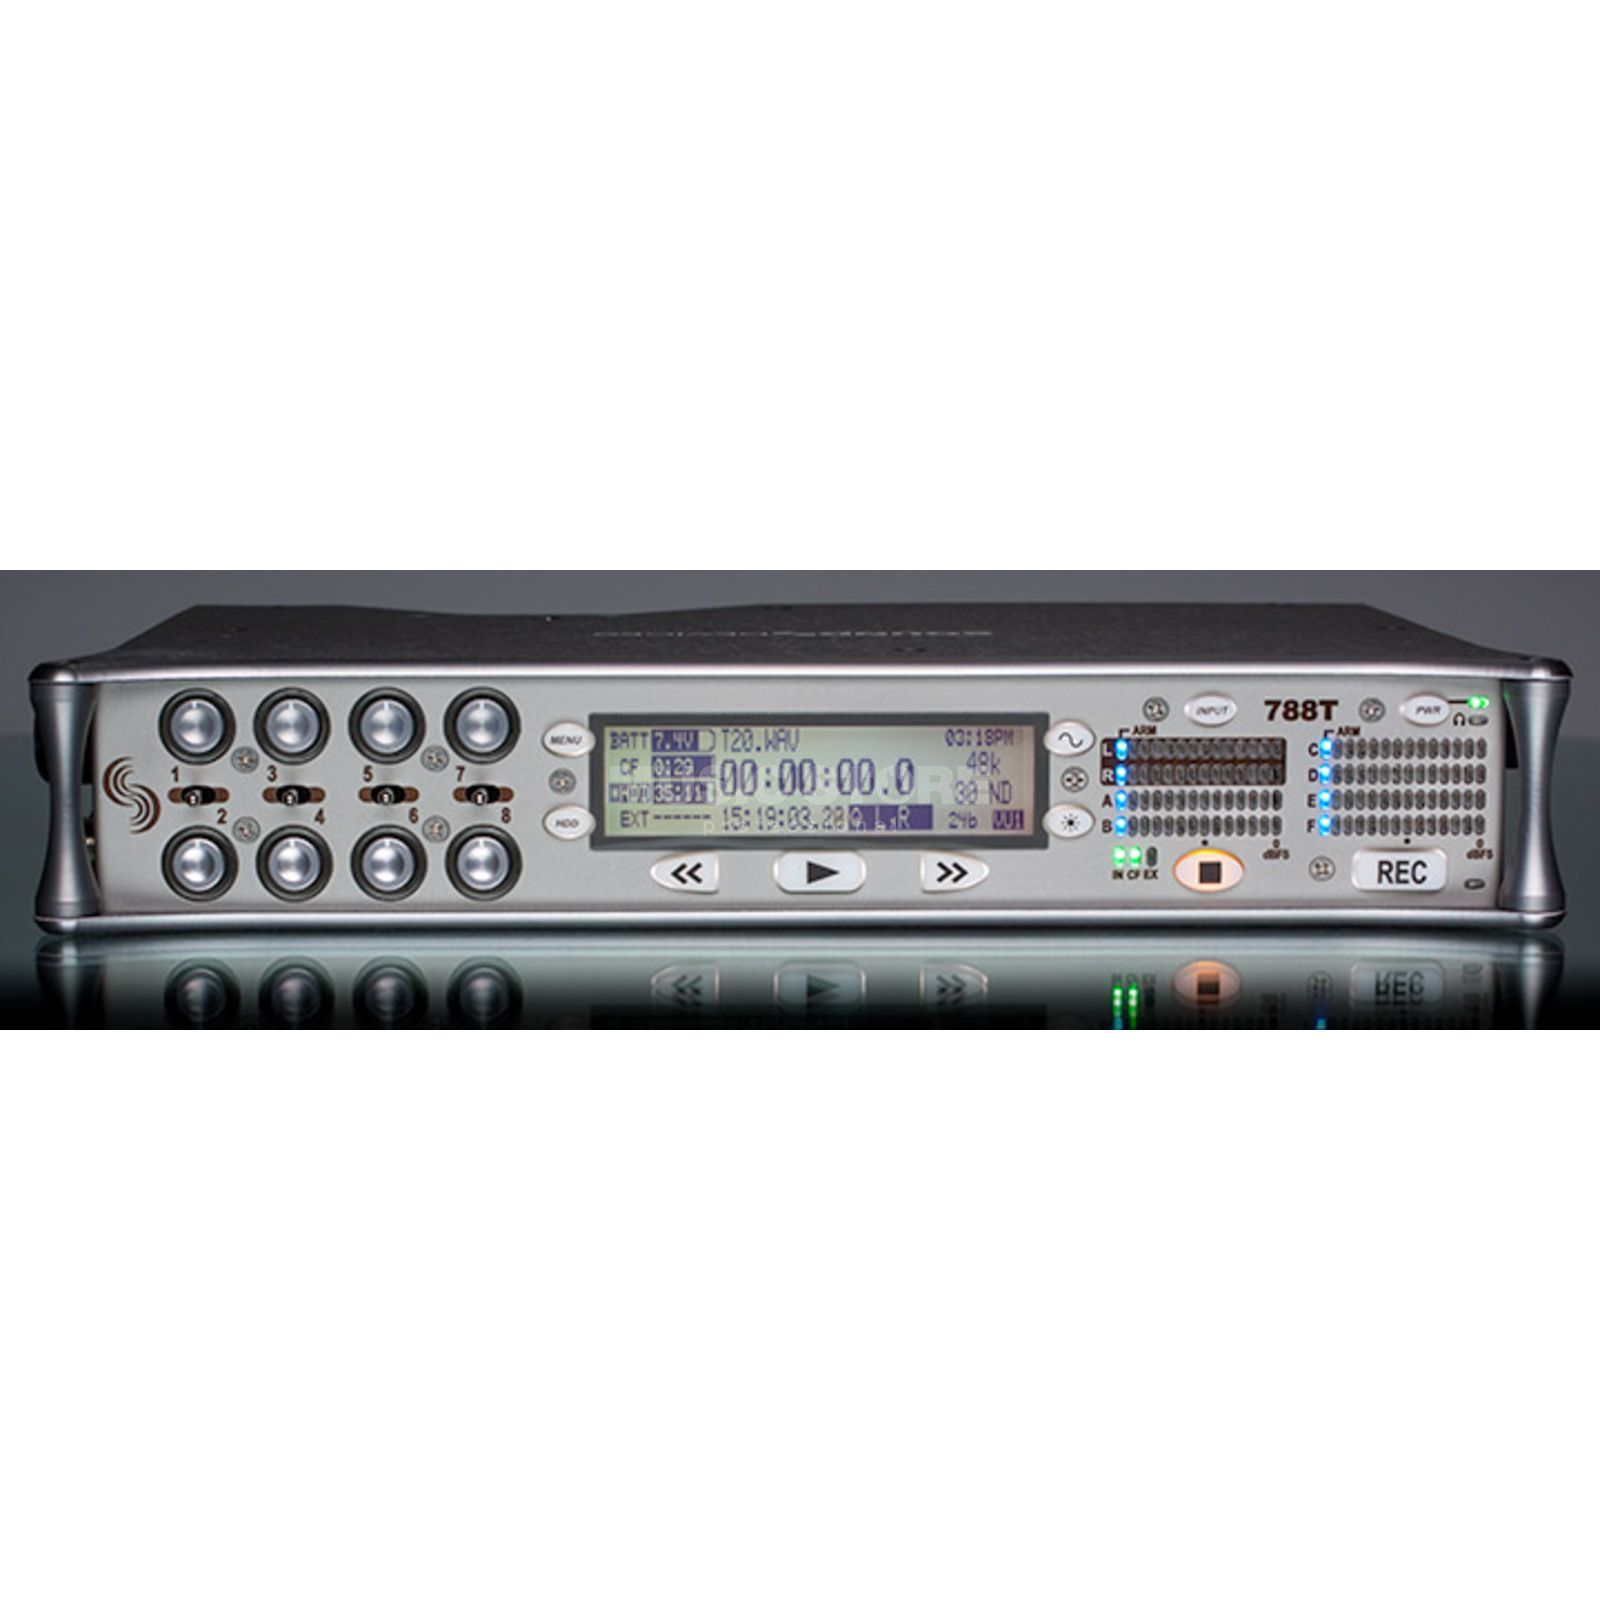 Sounddevices 788T Digital Audio Recorder  Produktbild